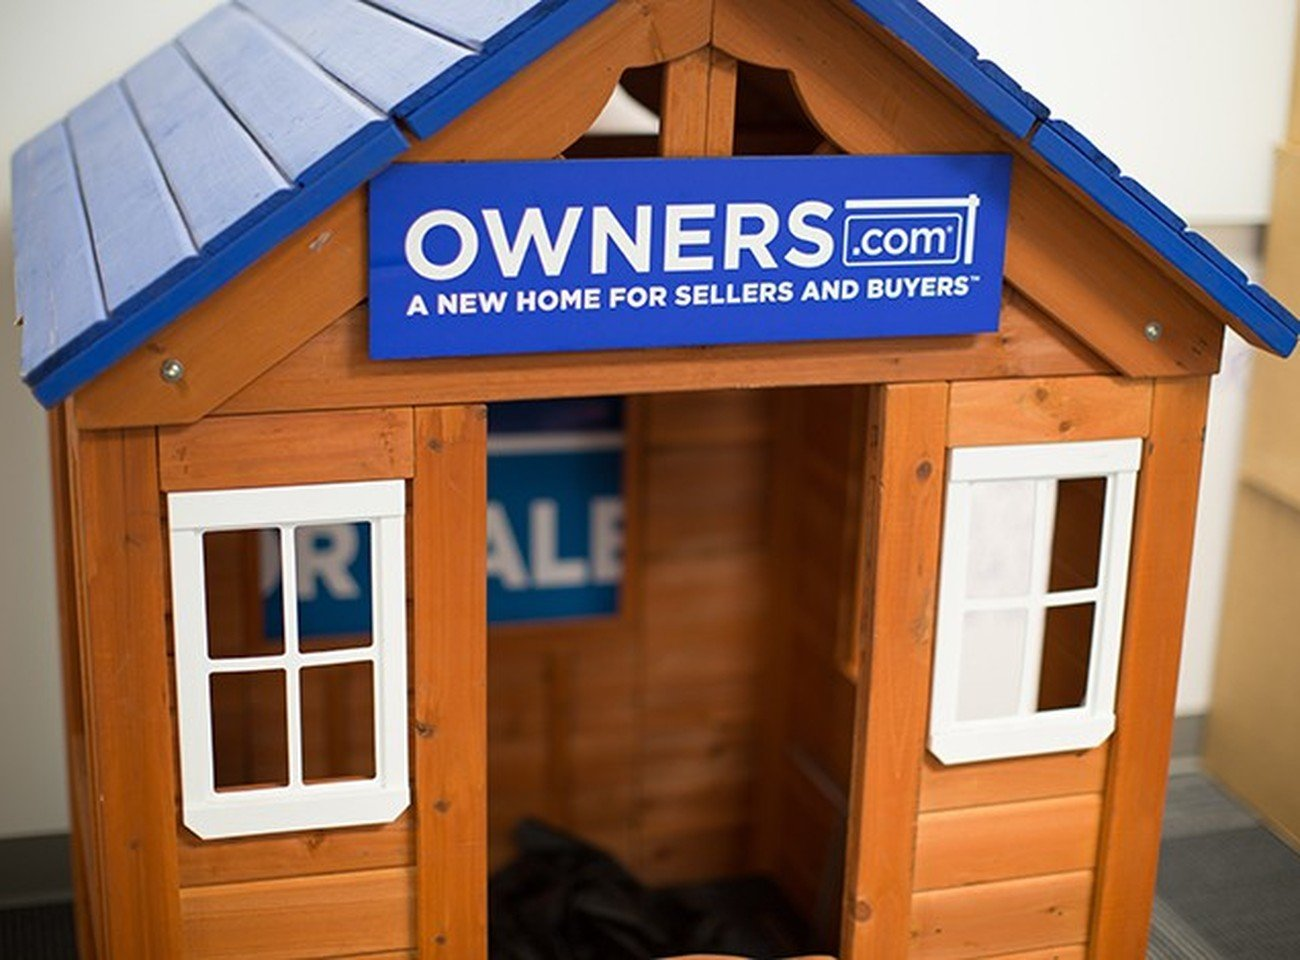 owners.com Careers